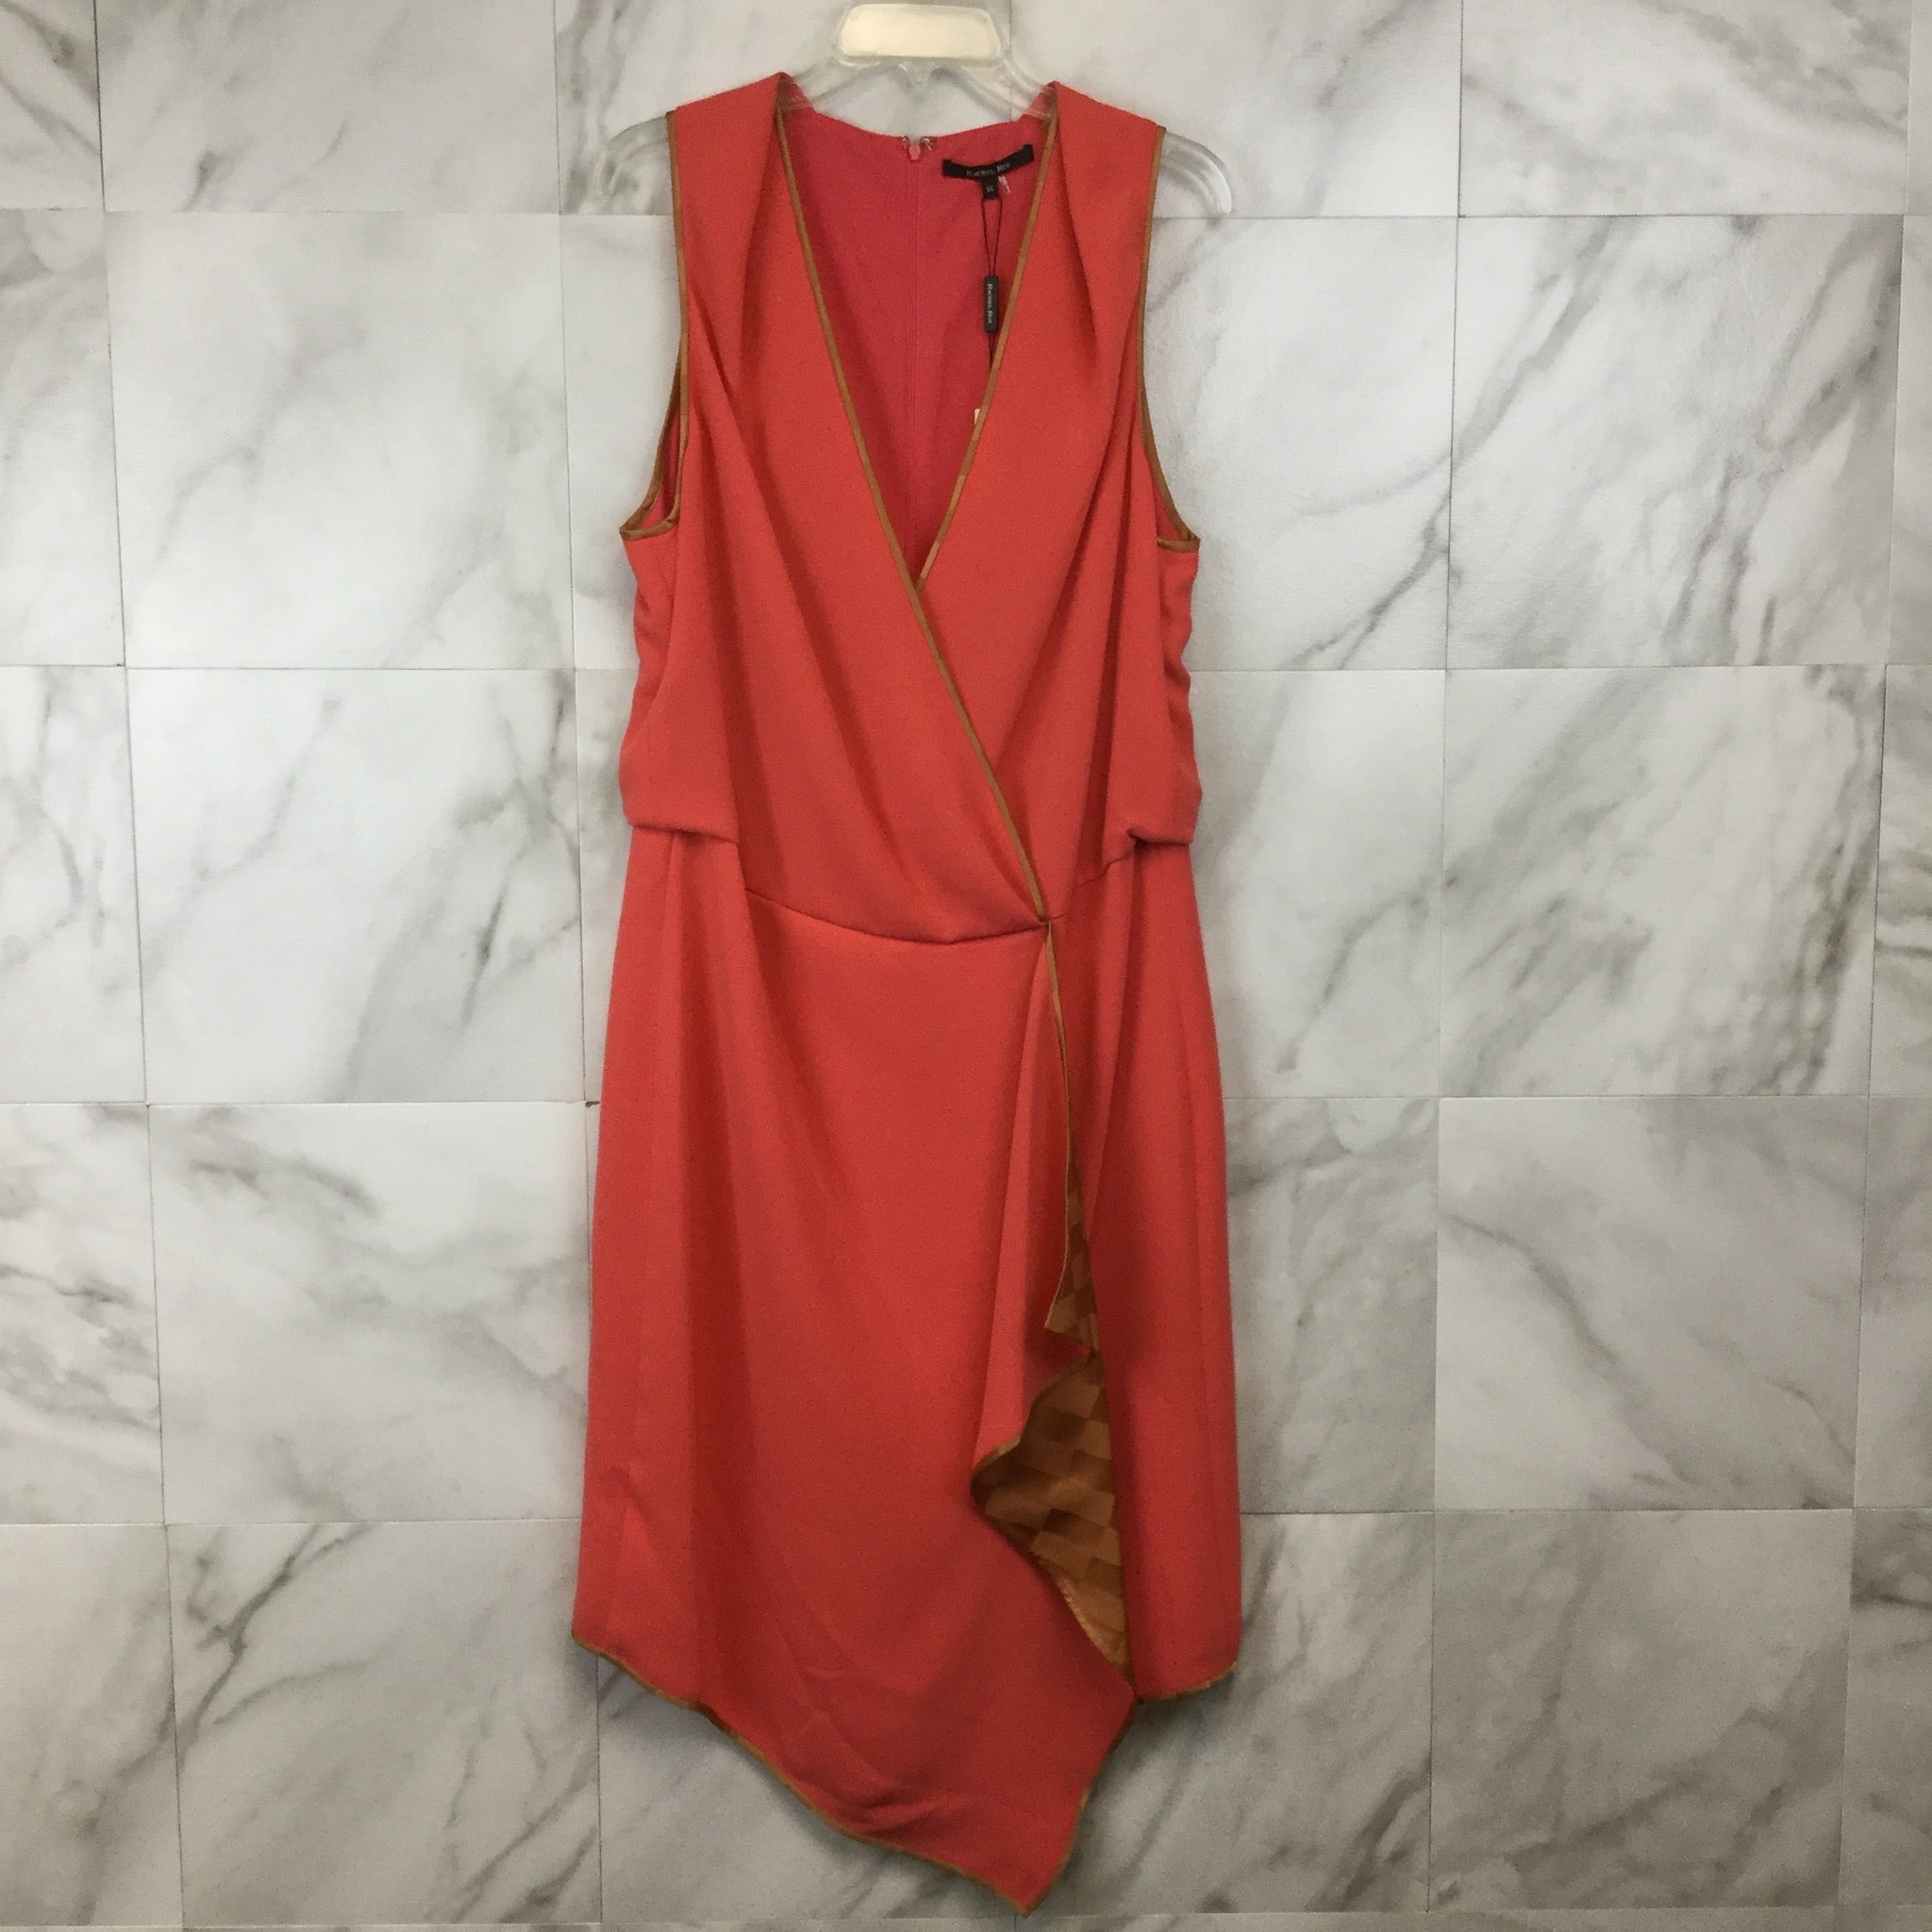 Rachel Roy Zinnia Coral Gold Cascade Dress - size 16